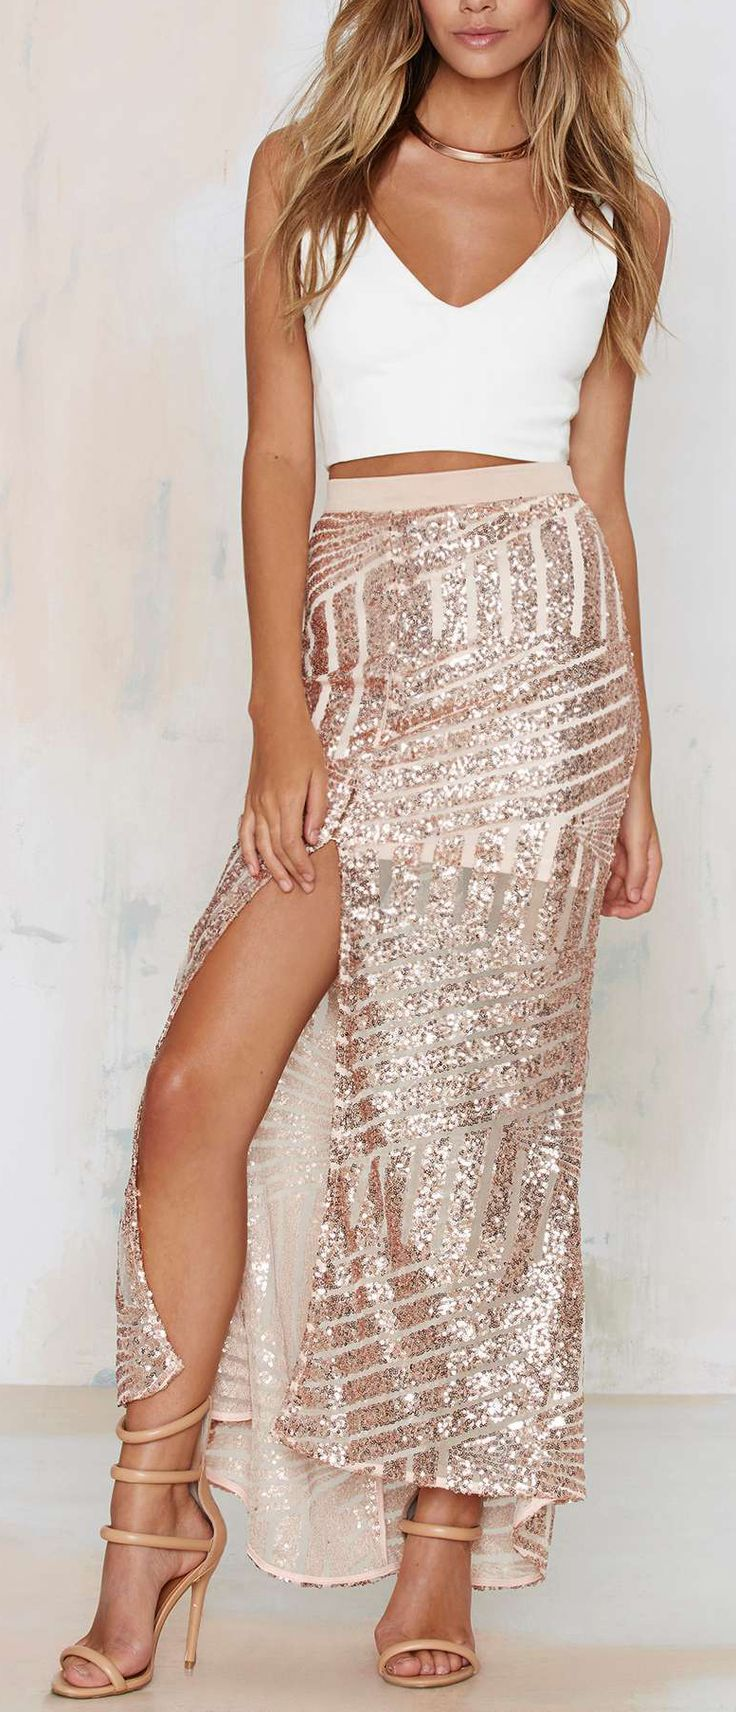 Best 25+ Formal tops ideas on Pinterest | Fancy gowns, Glitter ...